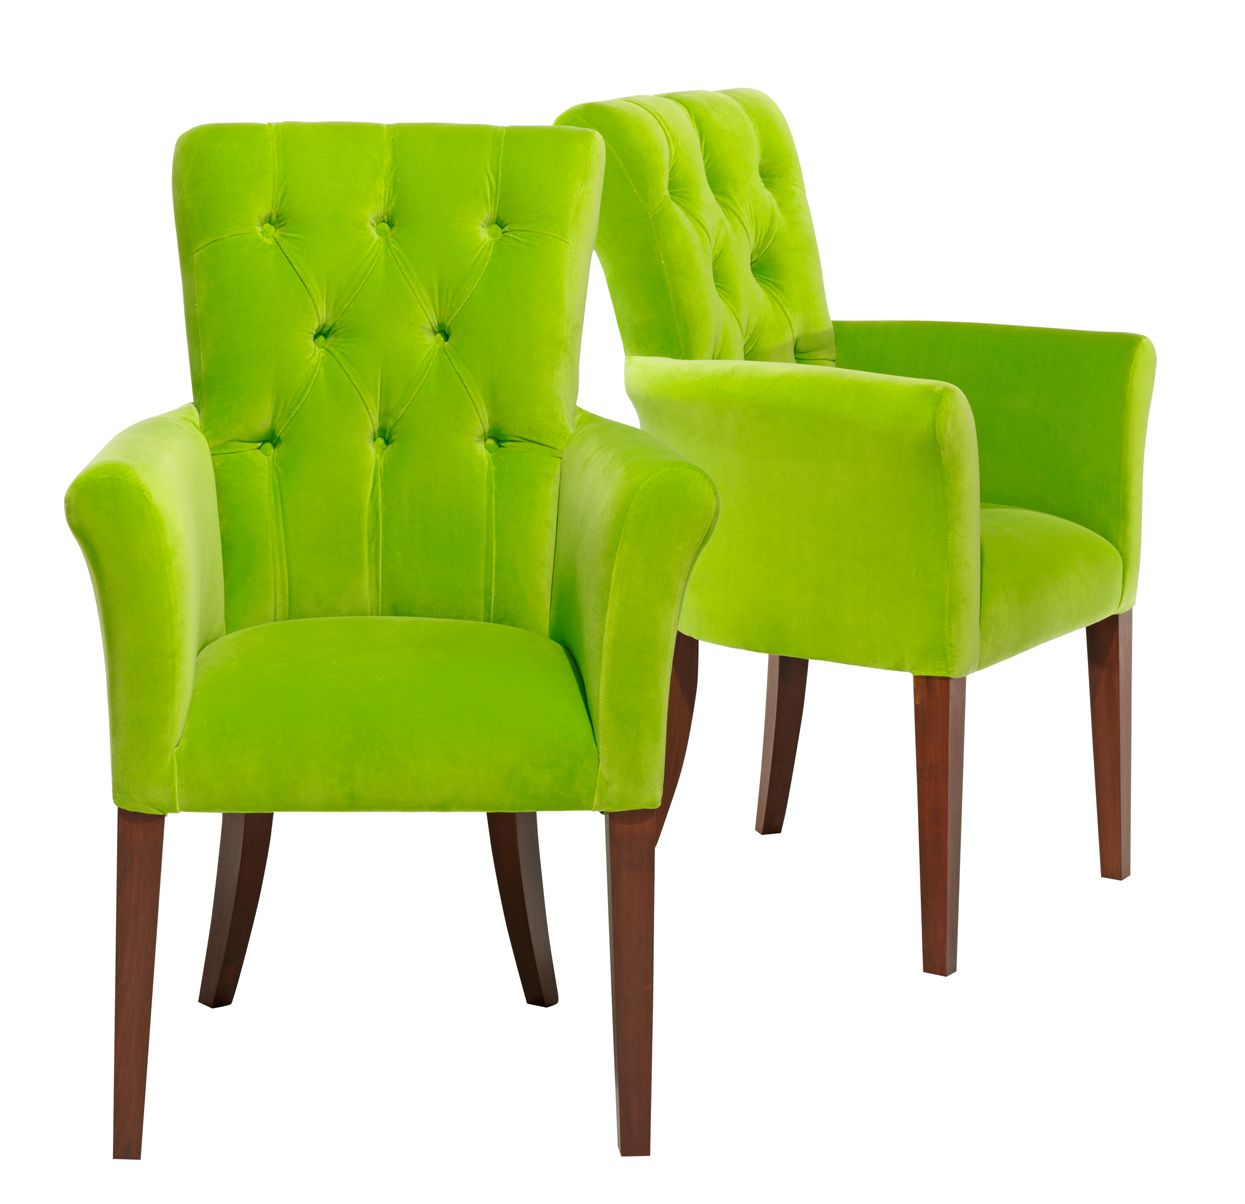 These Bright Lime Green Chairs From Sofa Design Add Some Colour To The Dining Room Dining Chairs Green Accent Chair Green Chair